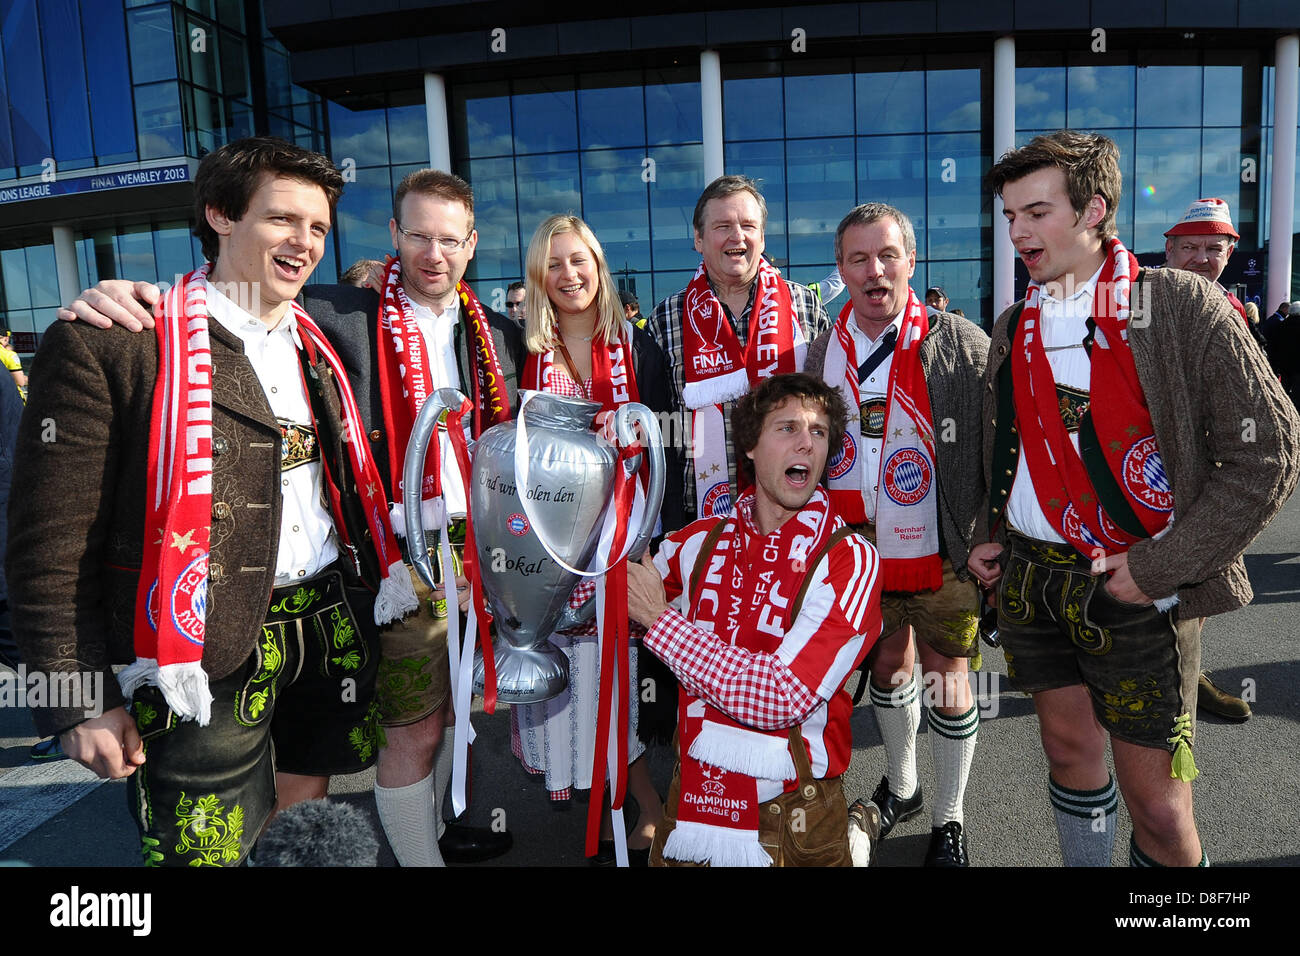 Fans of Bayern Munich hold a replicated Champions League trophy in their hands as they sing a song after the Champions - Stock Image